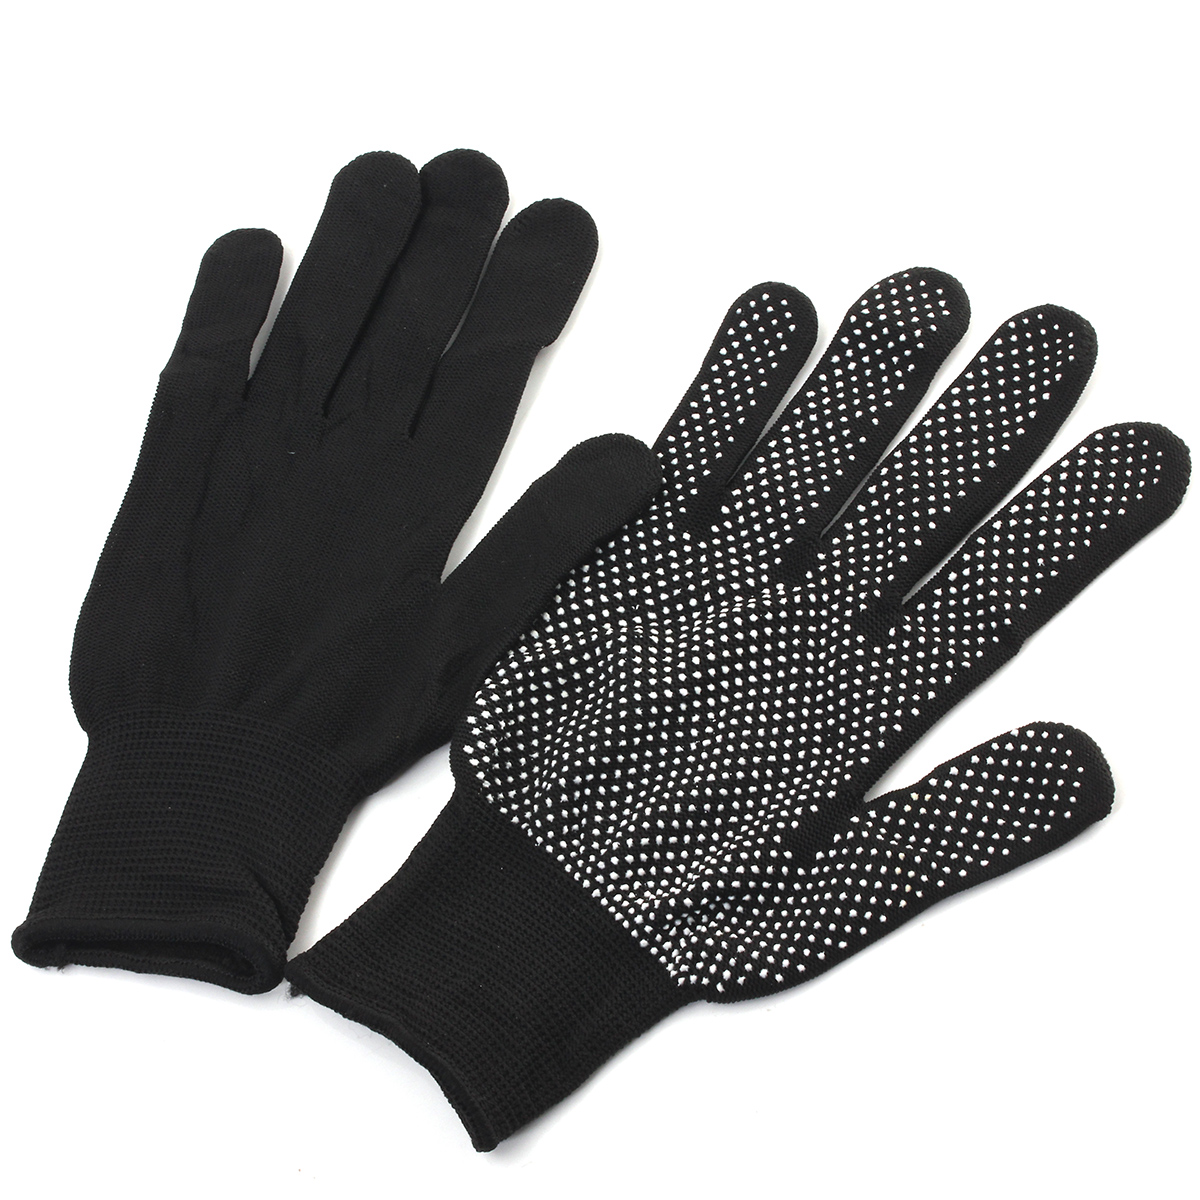 2pcs Heat Resistant Safety Gloves For Salon Hair Straightener Perm Hairdressing